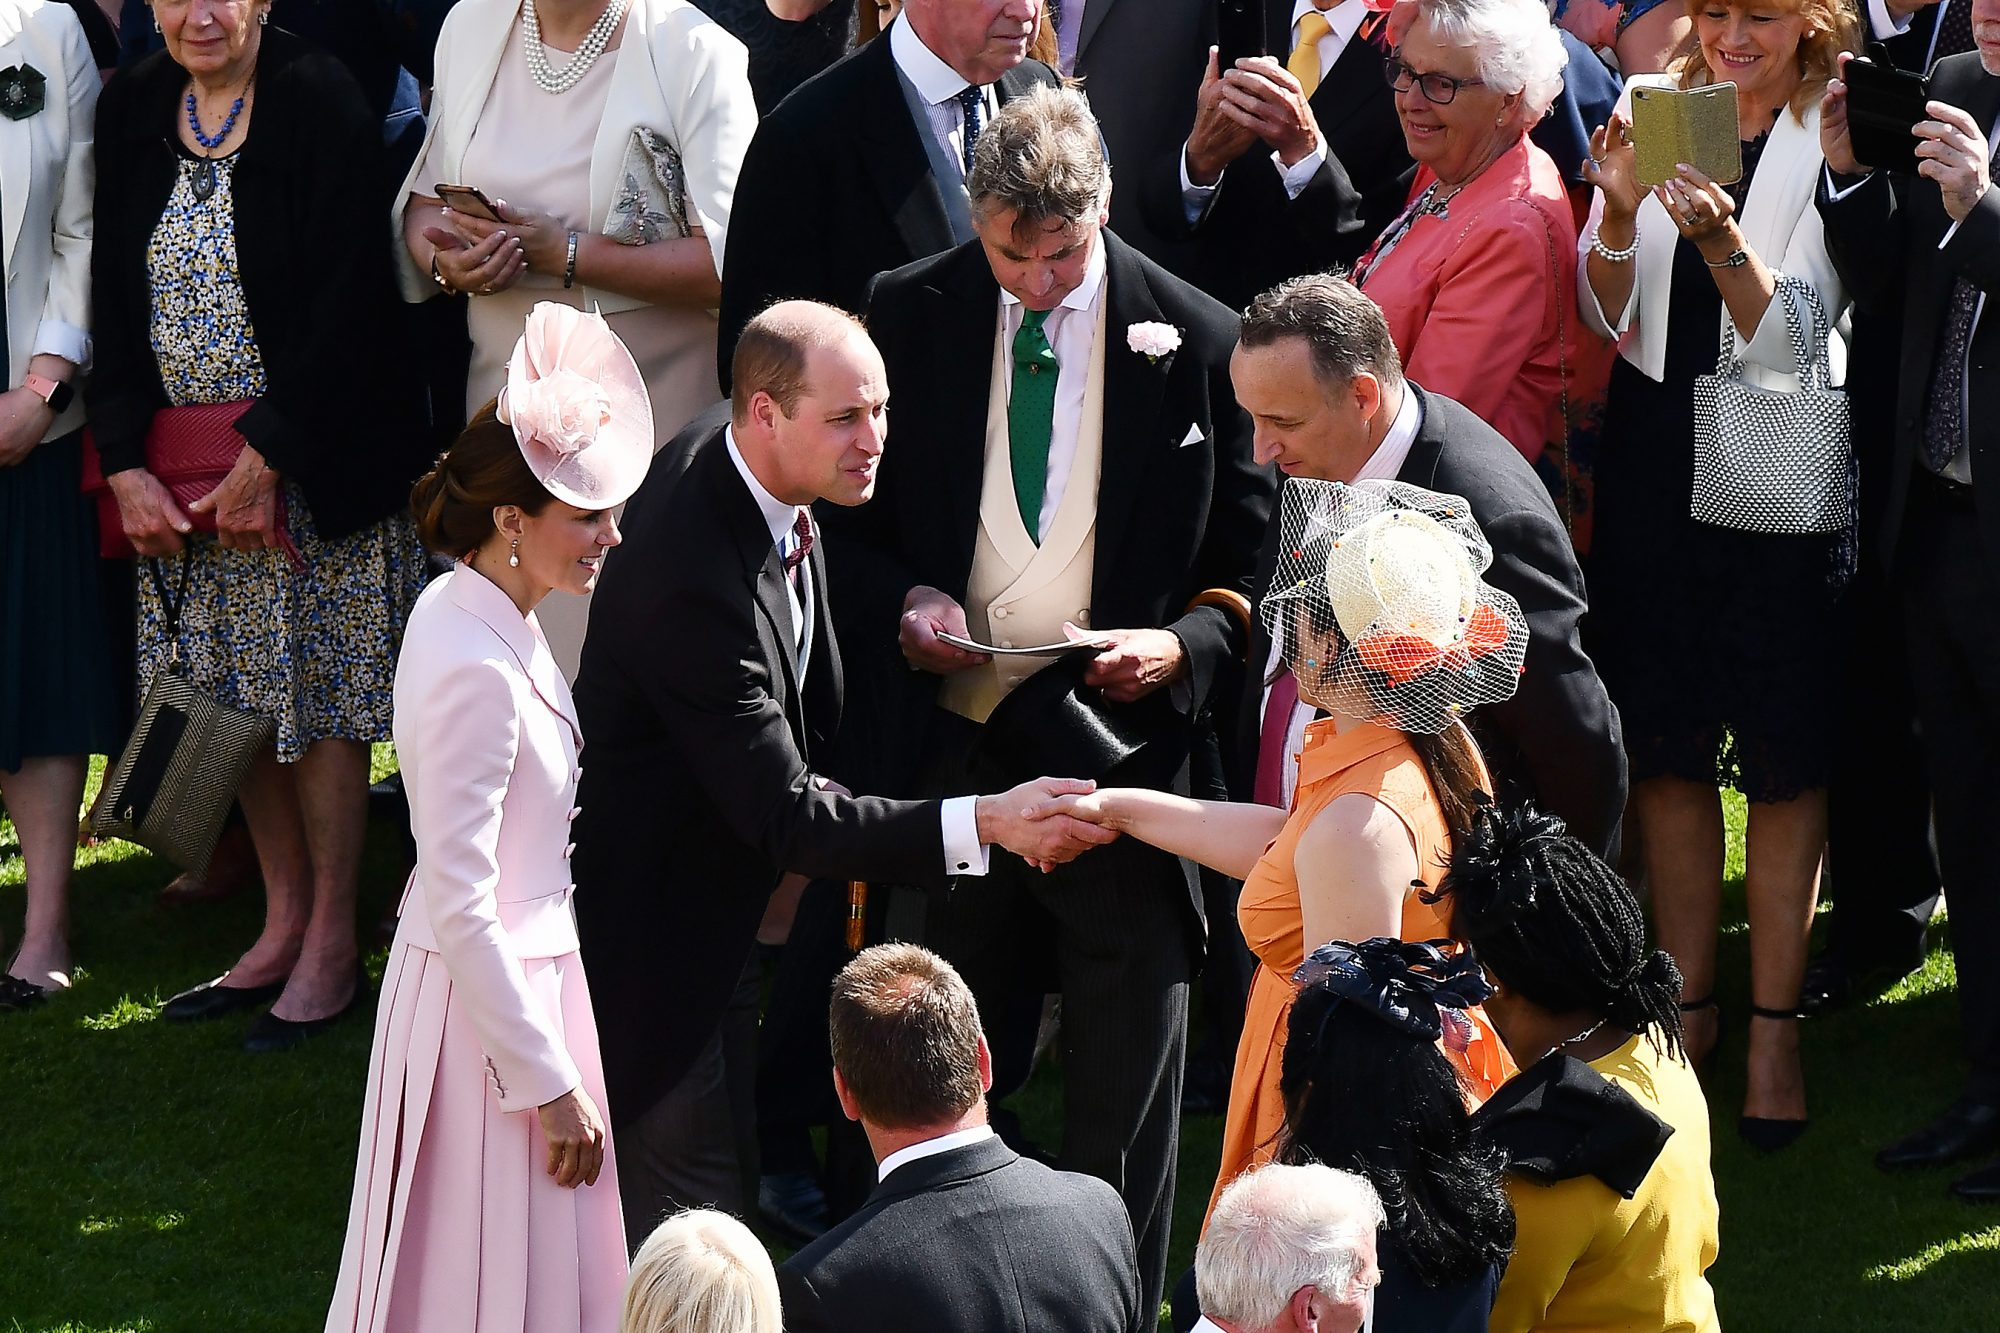 Britain's Prince William, Duke of Cambridge, (C) and Britain's Catherine, Duchess of Cambridge, (L) meet guests at a garden party in the grounds of Buckingham Palace in central London on May 21, 2019